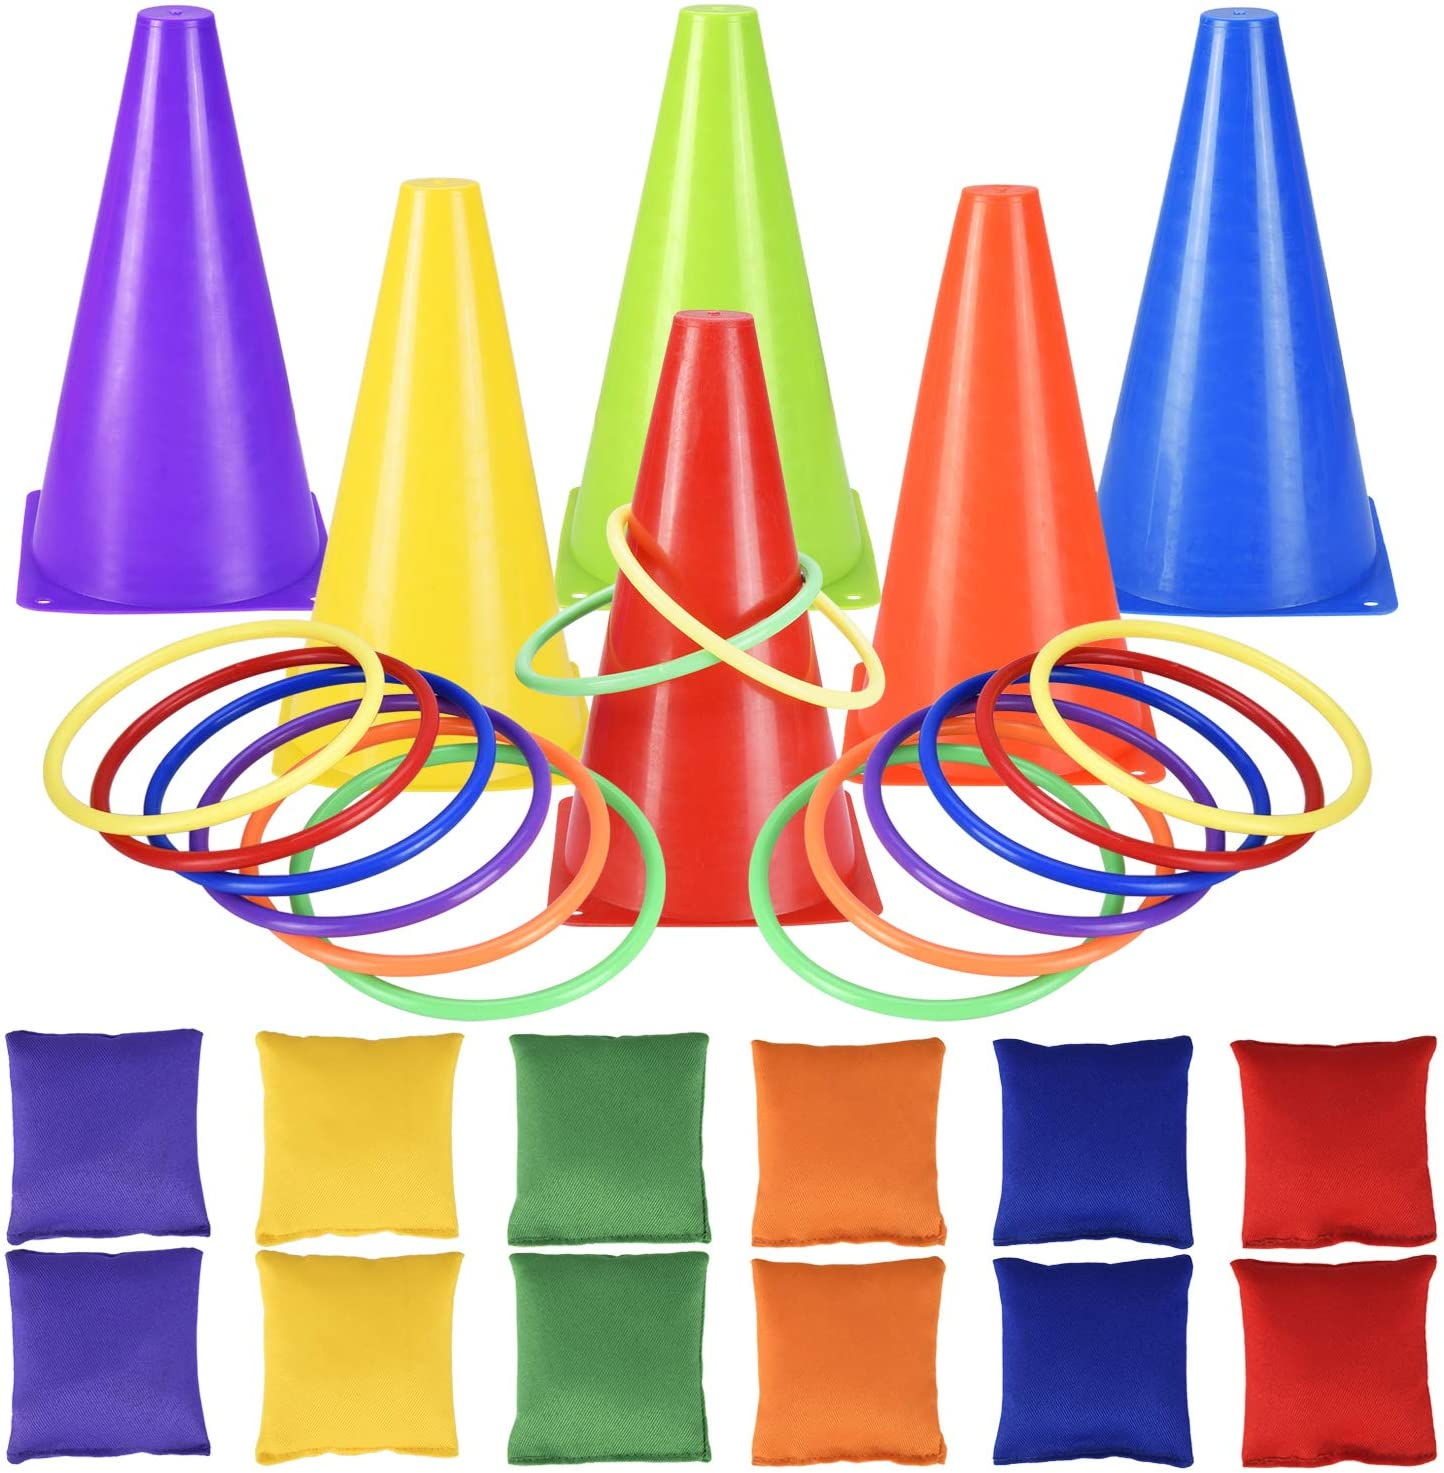 30PCS Carnival Games Bean specialty shop Bag Ring Out for Birthday Toss Max 72% OFF